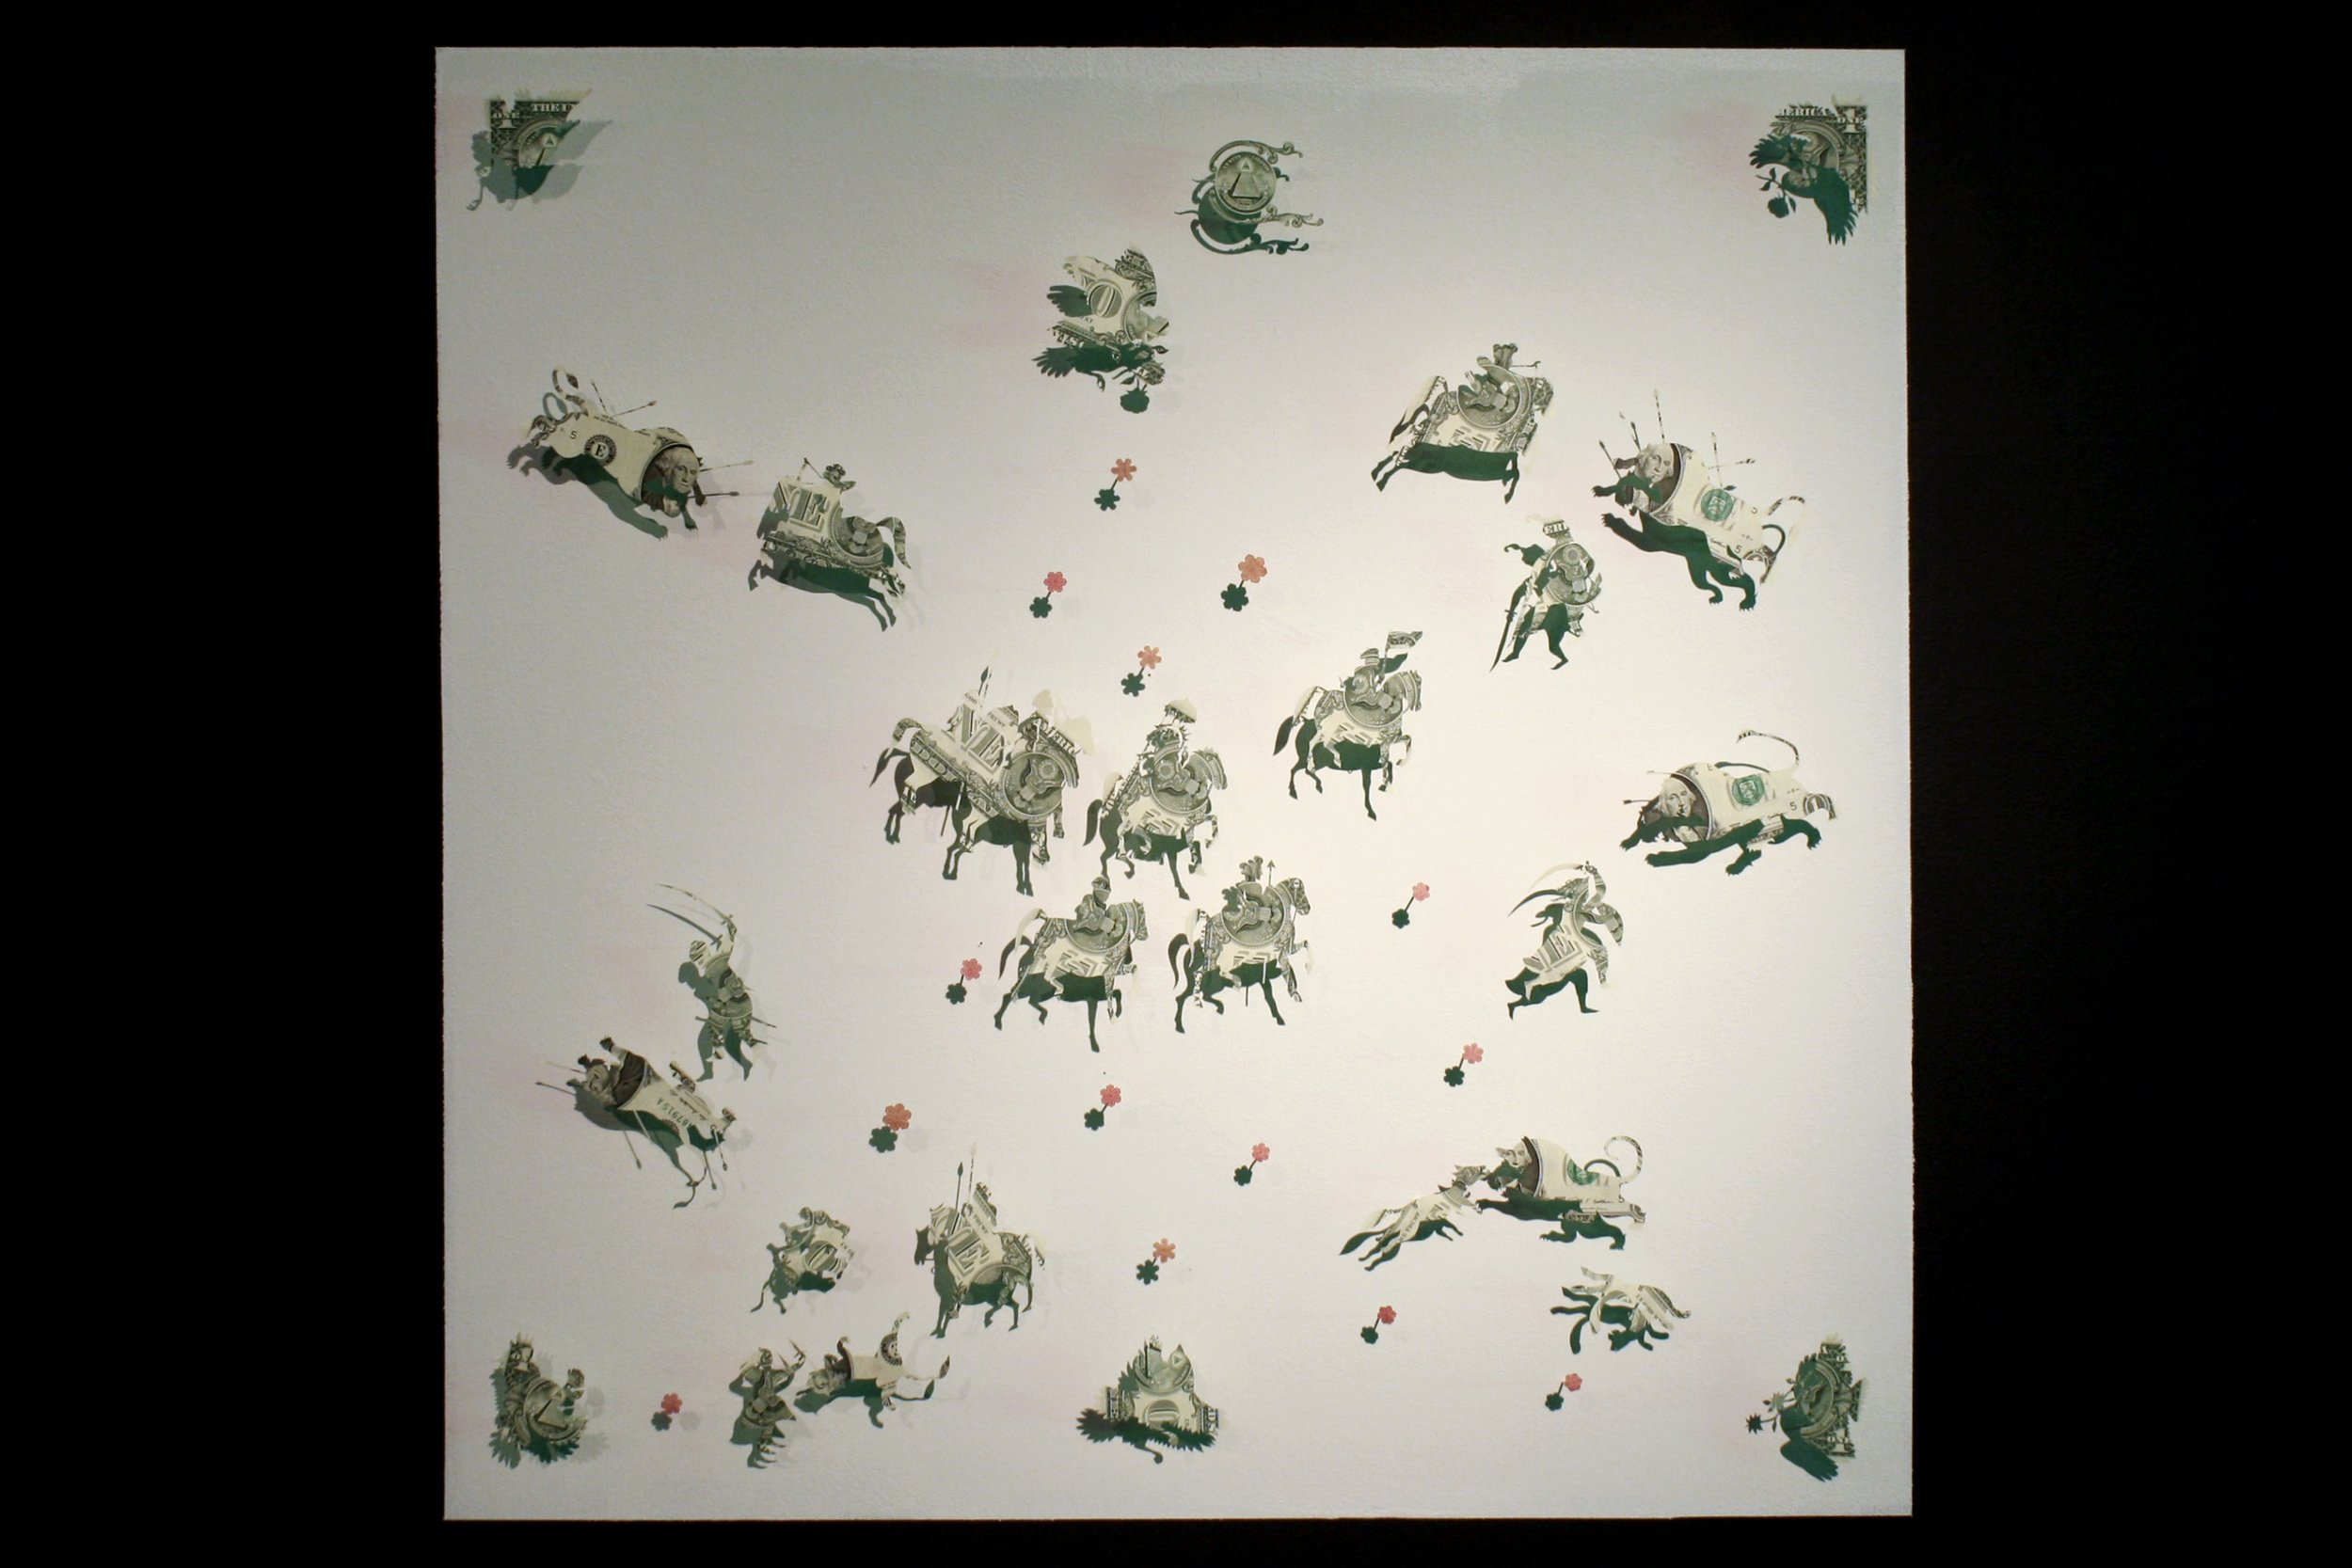 Assembly I: Hunter's Game, 2013,Hand-cut and folded uncirculated 1US$ bills, 100 Pakistani Rupees, 90 x 90 cm.